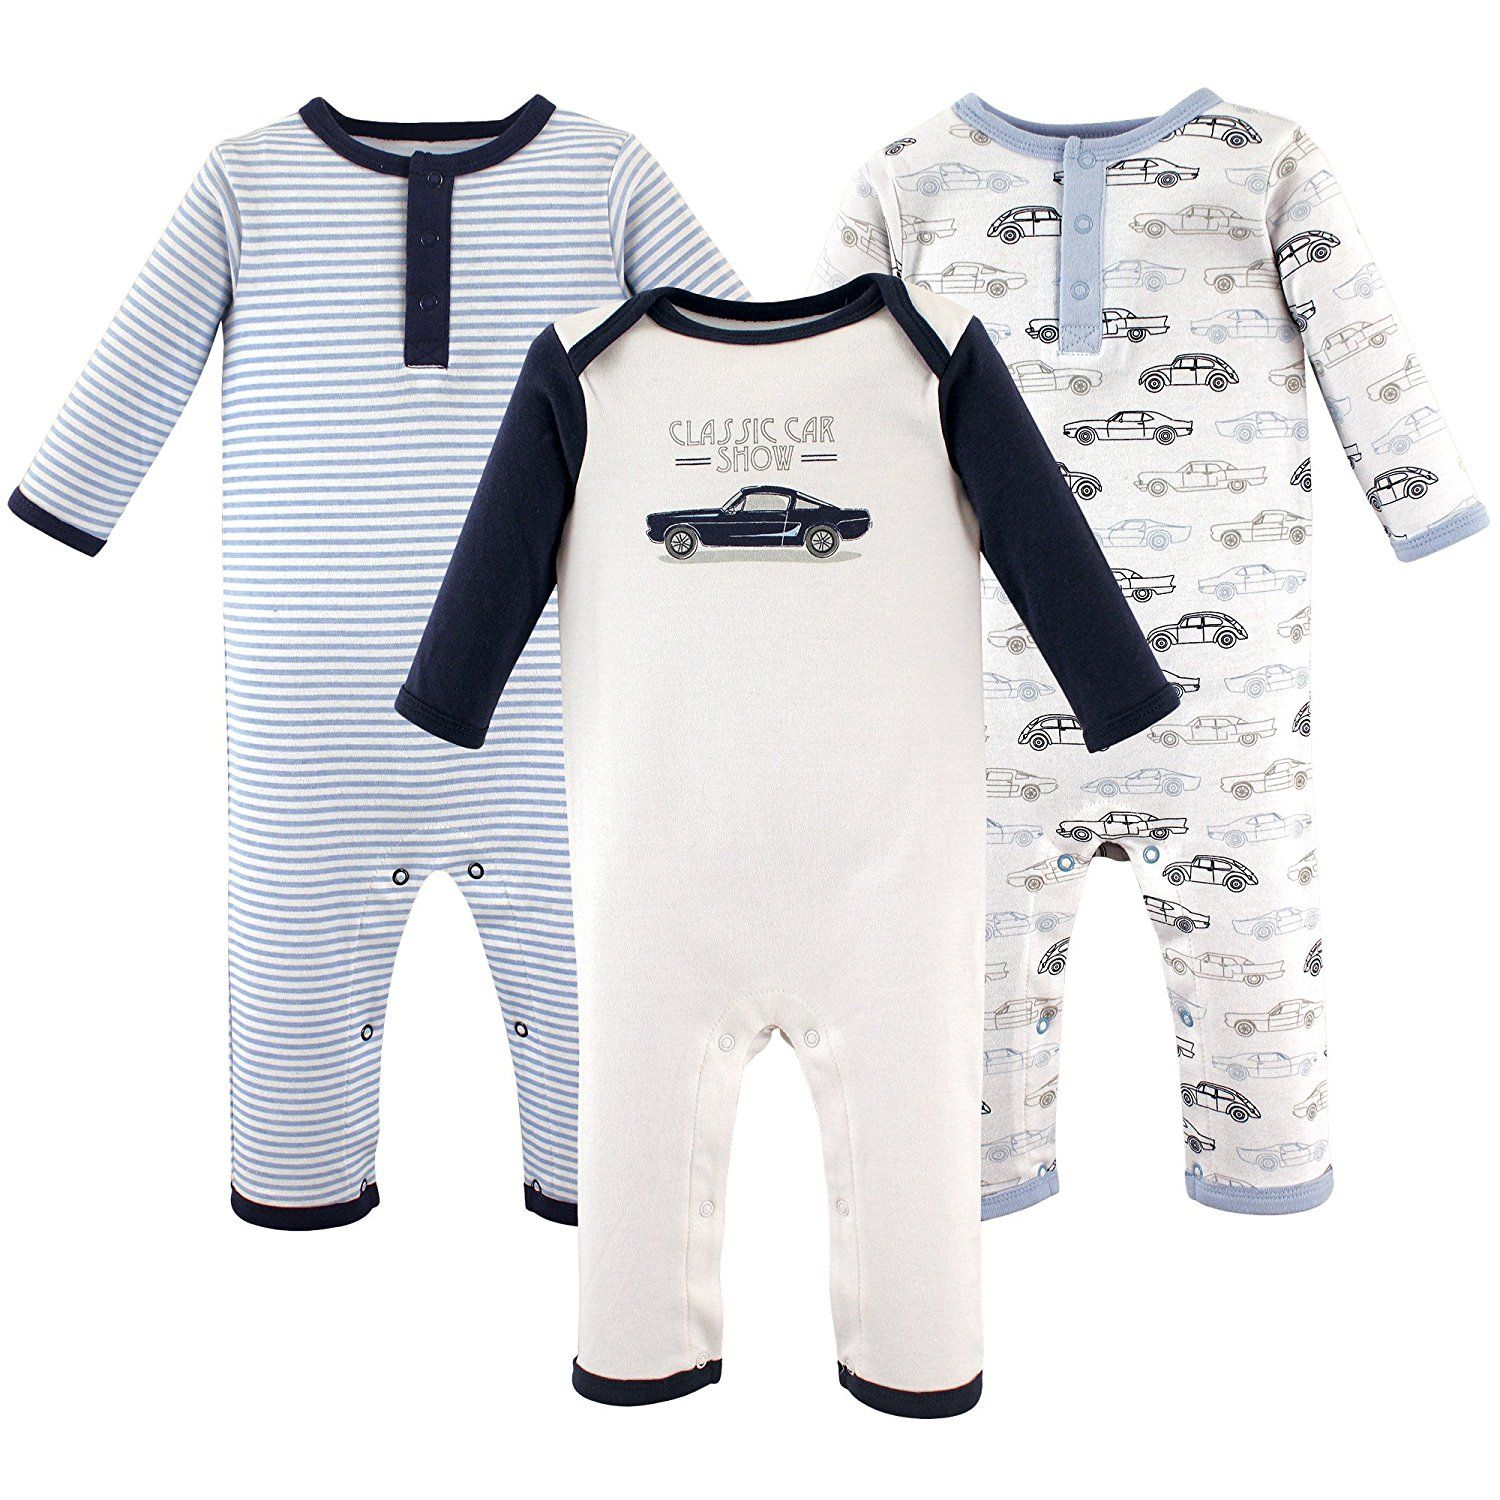 Hudson Baby Baby Cotton Union Suit 3 Pack Antique Cars 0 3 Months